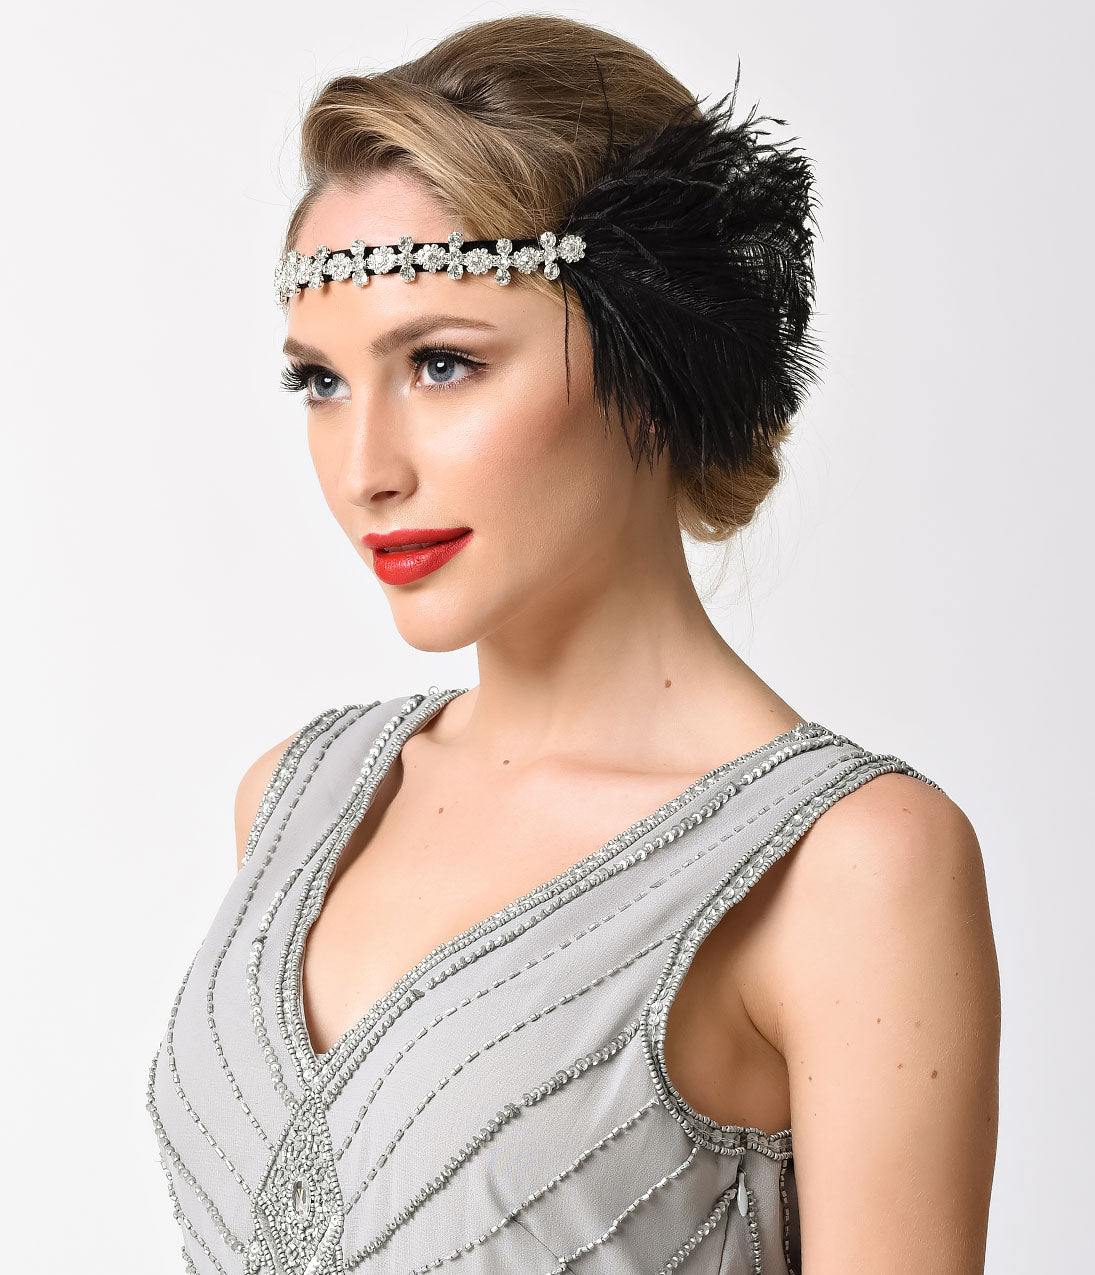 1920s Headband, Headpiece & Hair Accessory Styles Black Feather  Silver Rhinestone Gatsby Headband $48.00 AT vintagedancer.com